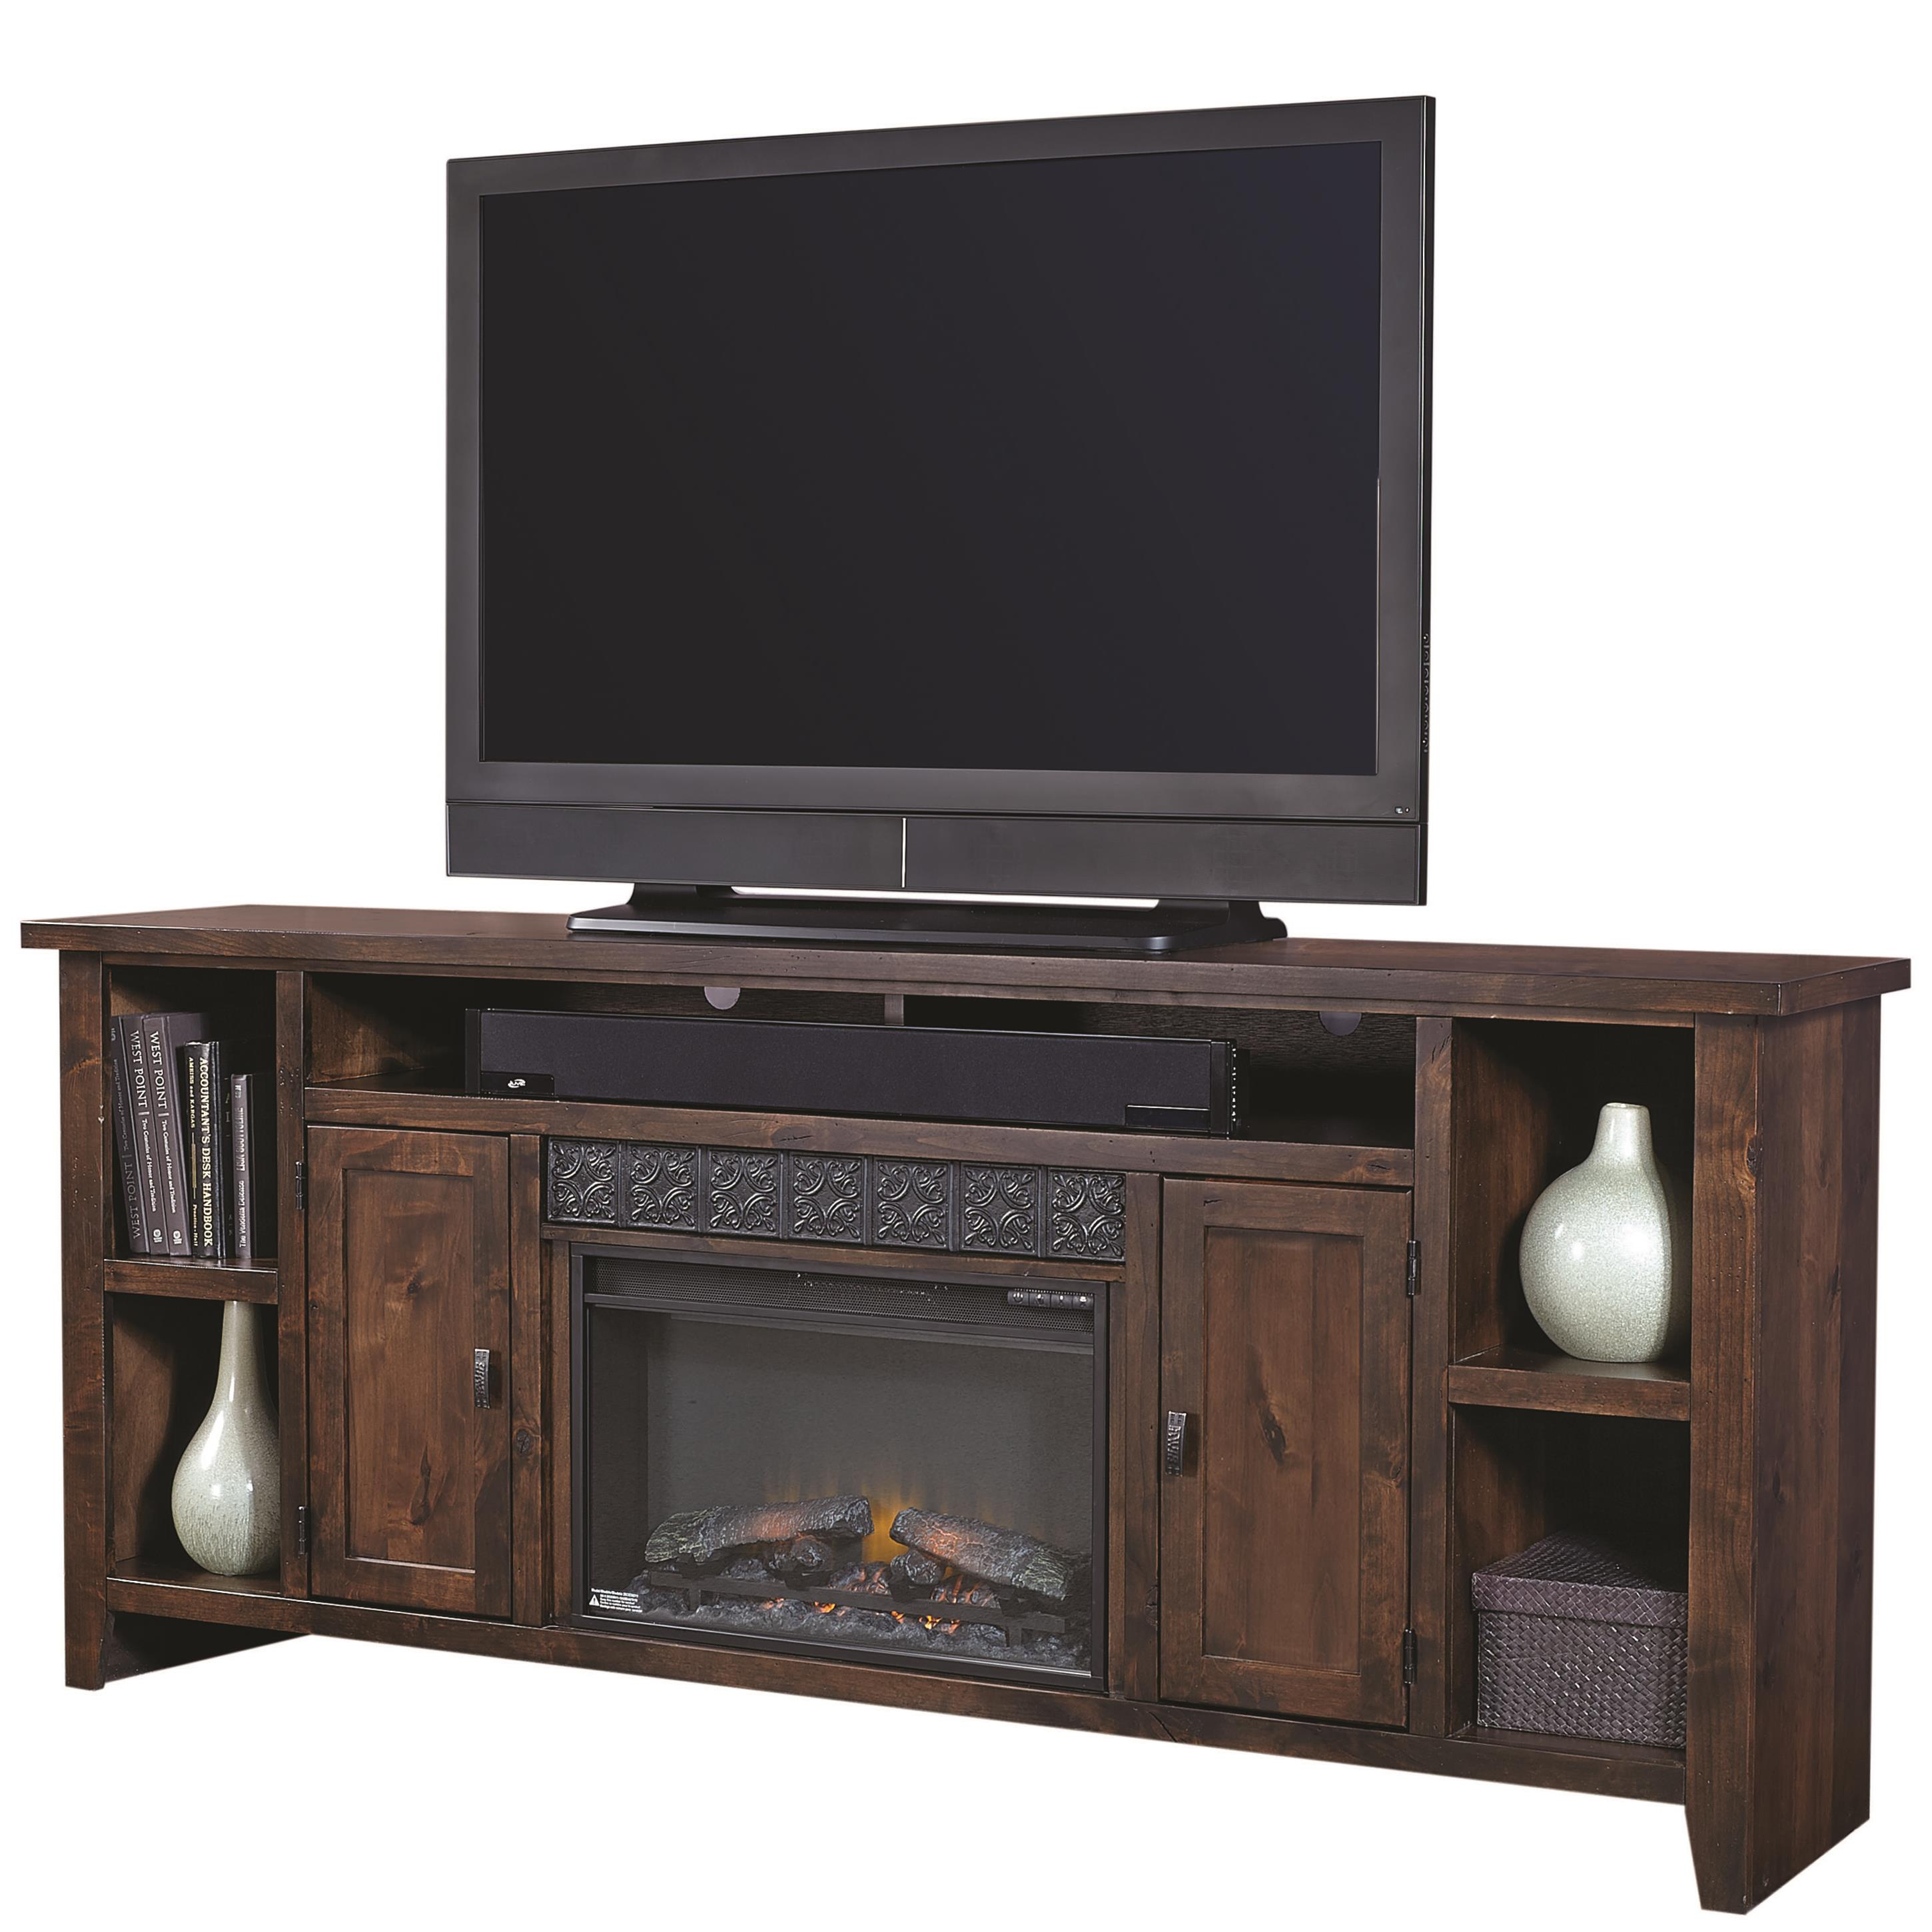 "Alder Grove 84"" Fireplace Console by Aspenhome at Walker's Furniture"